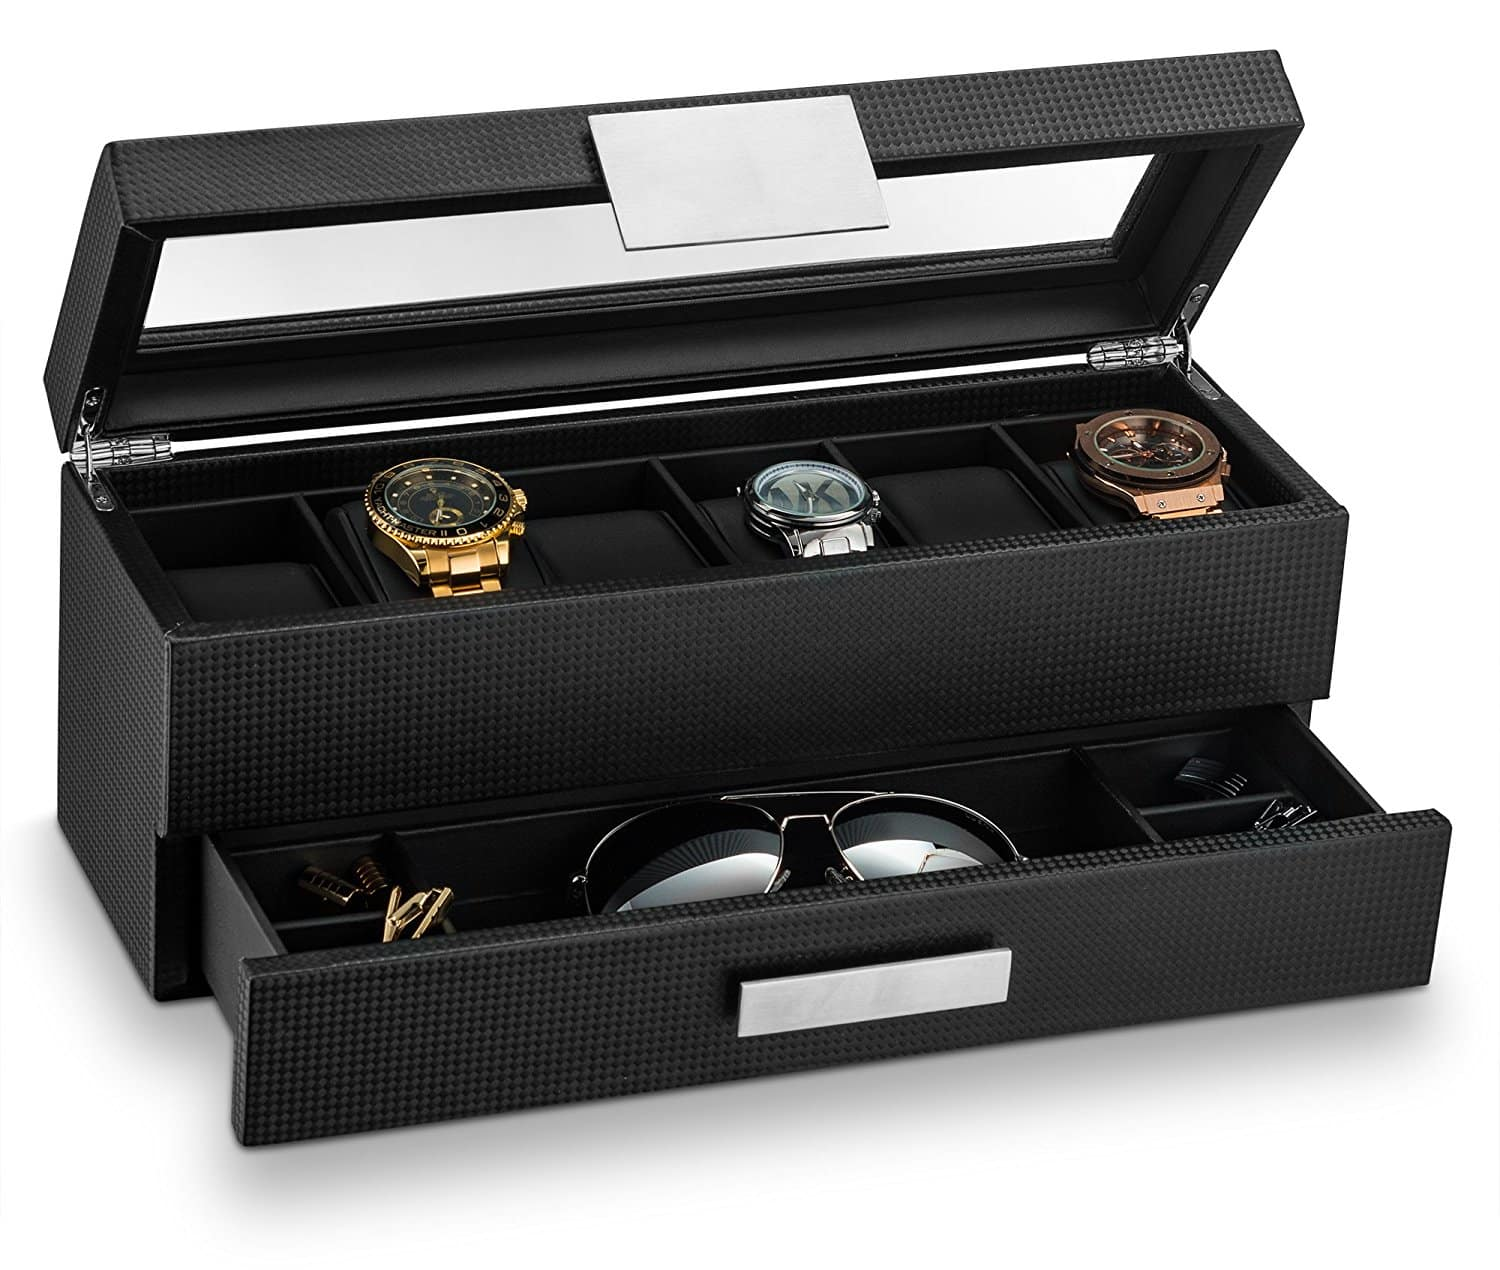 Glenor Co Watch Box with Valet Drawer for Men – 6 Slot Luxury Watch Case Display Organizer, Carbon Fiber Design -Metal Buckle for Mens Jewelry Watches, ...